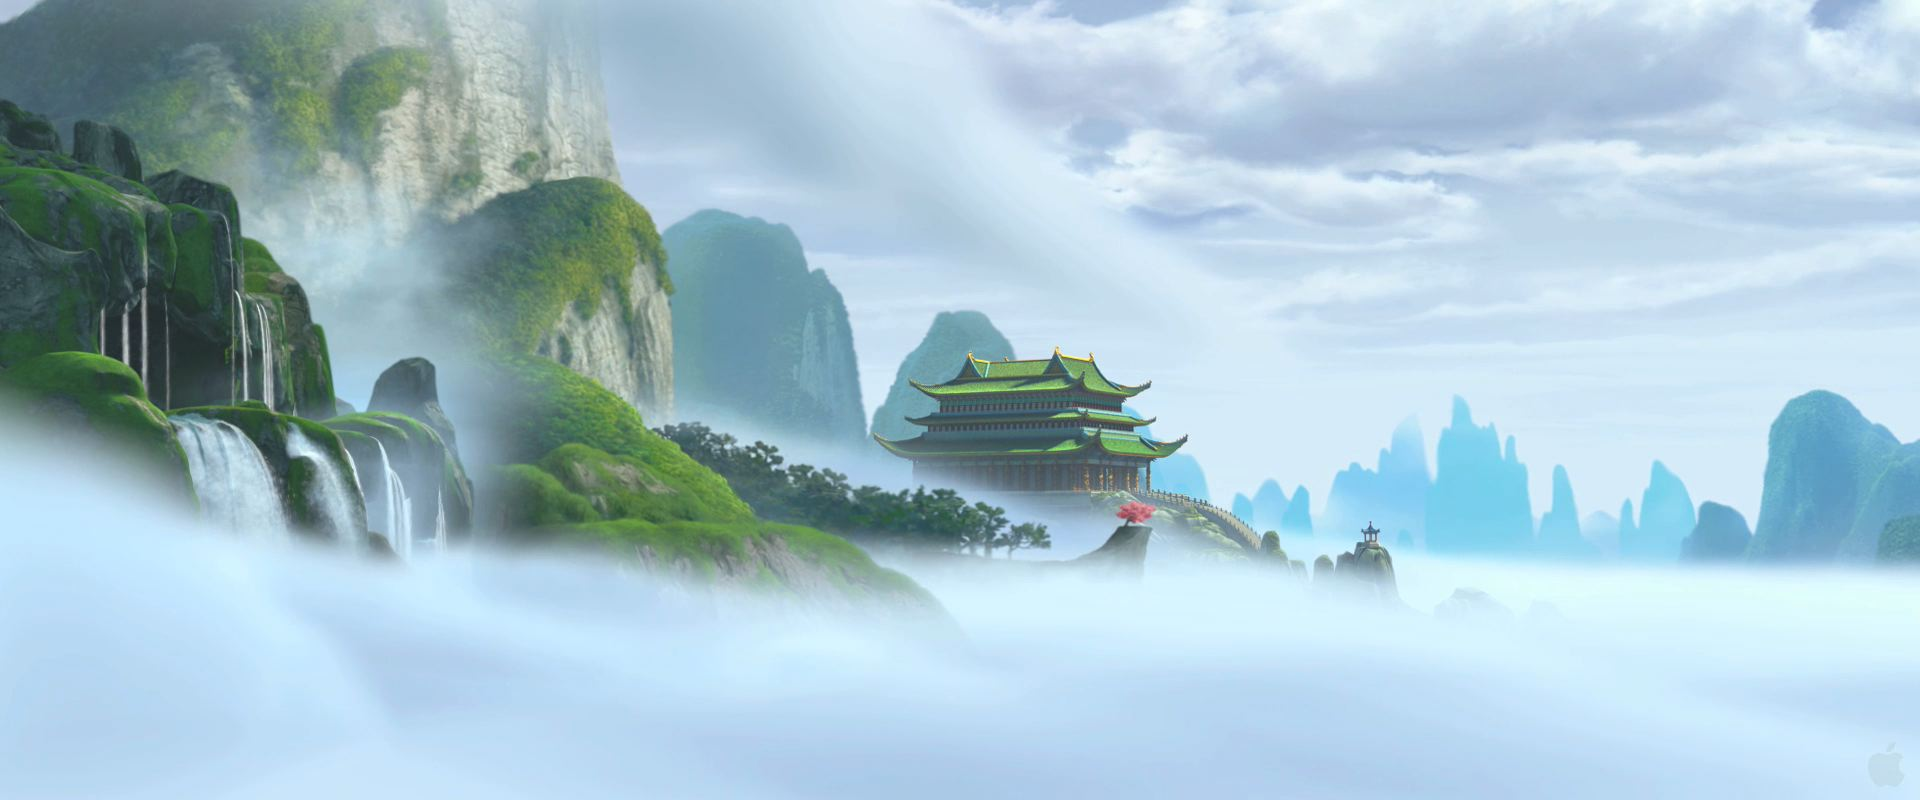 kung fu panda temple desktop wallpaper